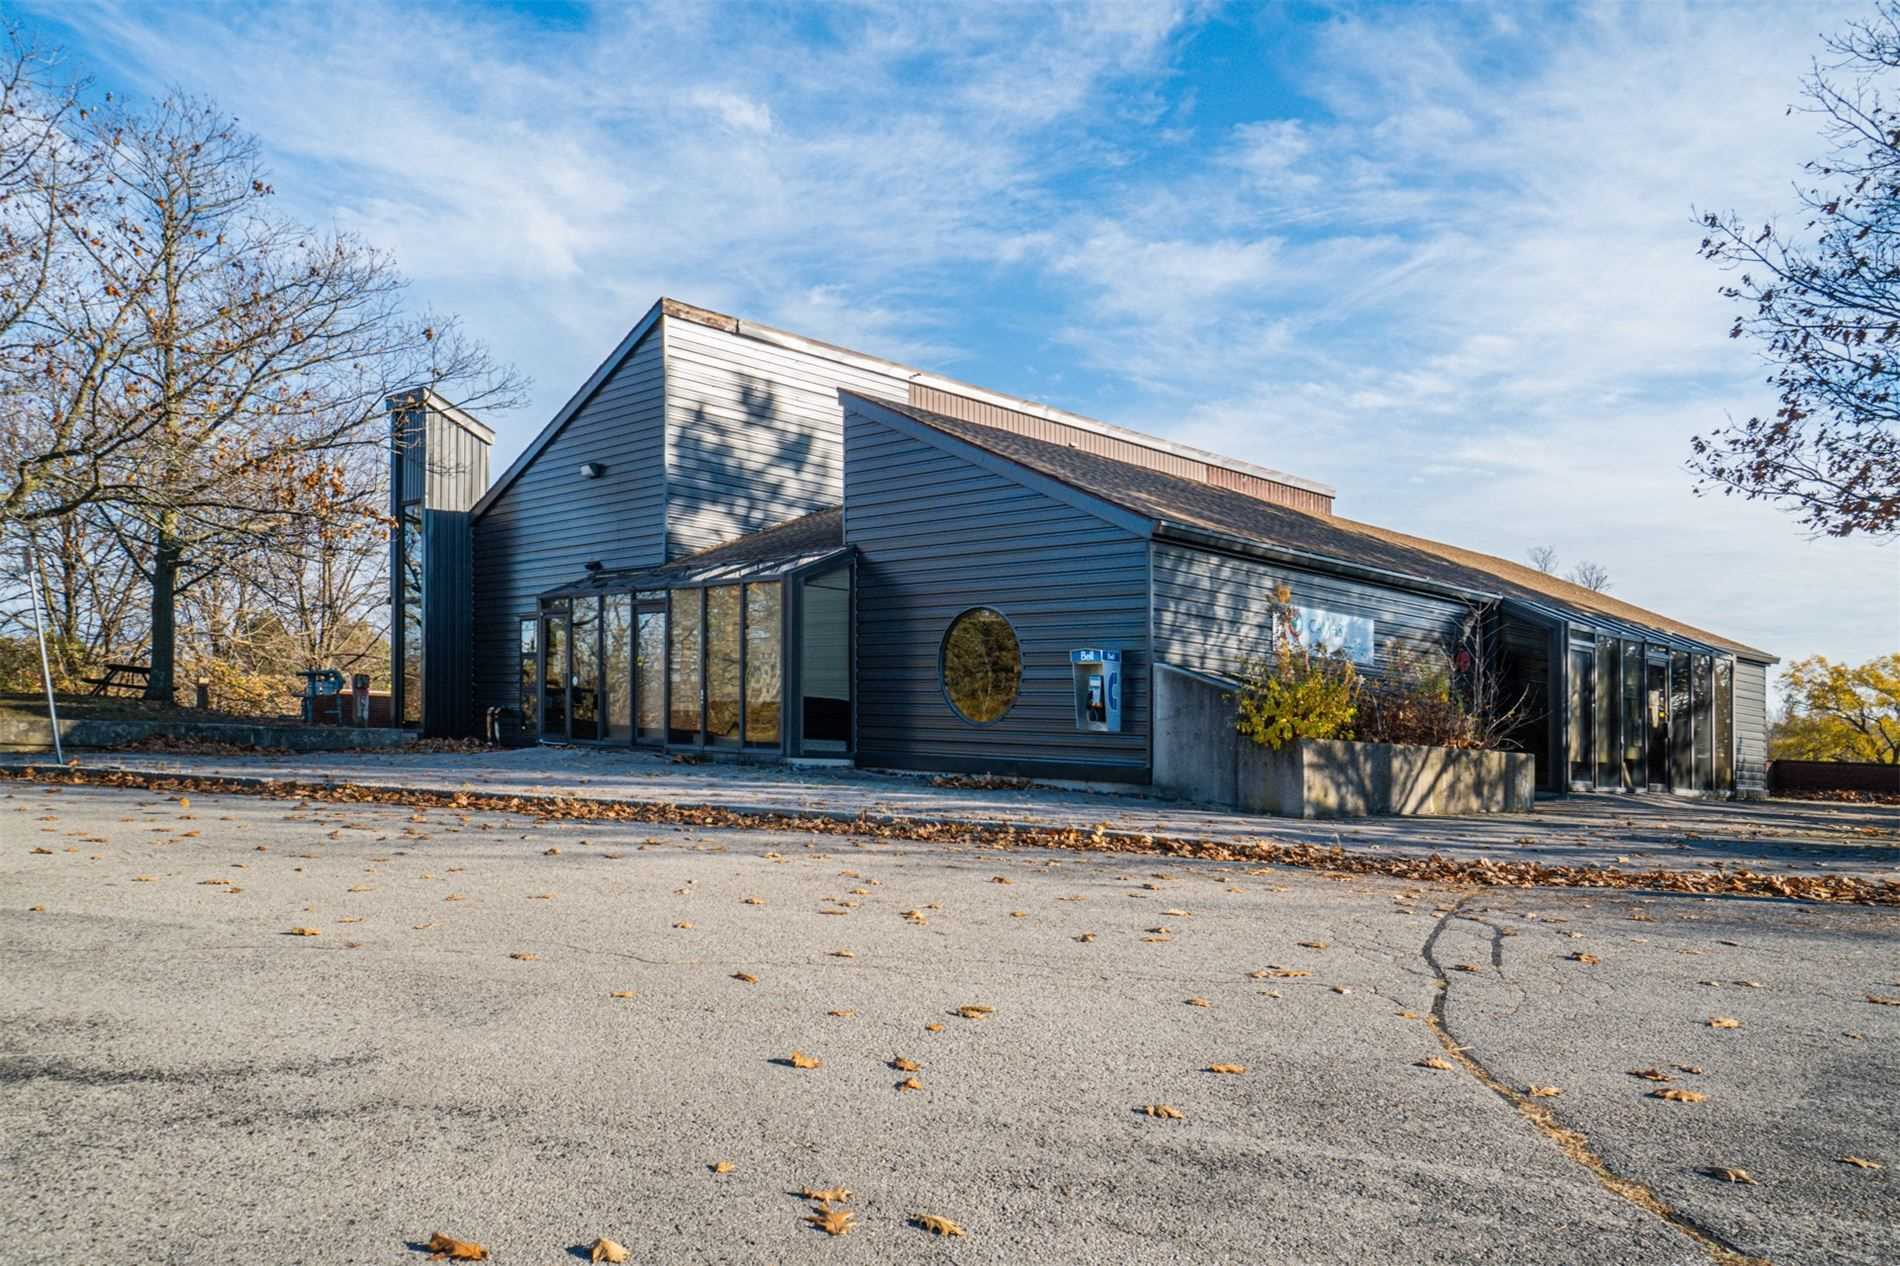 Commercial/retail For Sale In Haldimand , ,Commercial/retail,For Sale,Nanticoke Creek